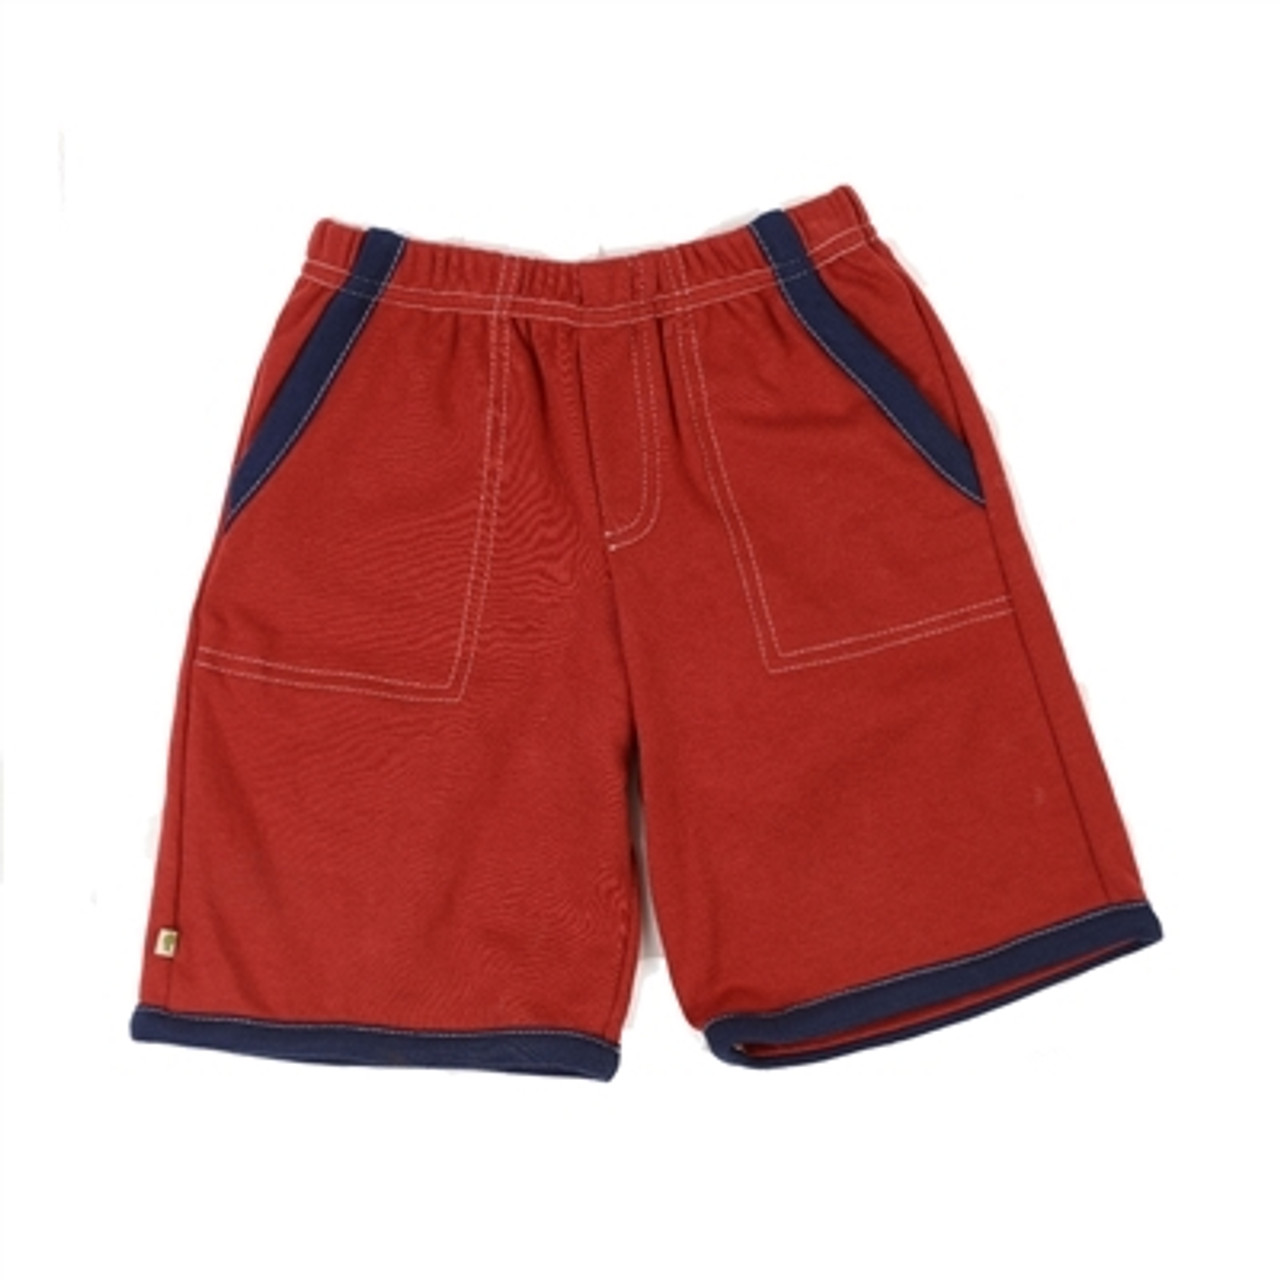 Organic Shorts for Toddlers - Red 2T